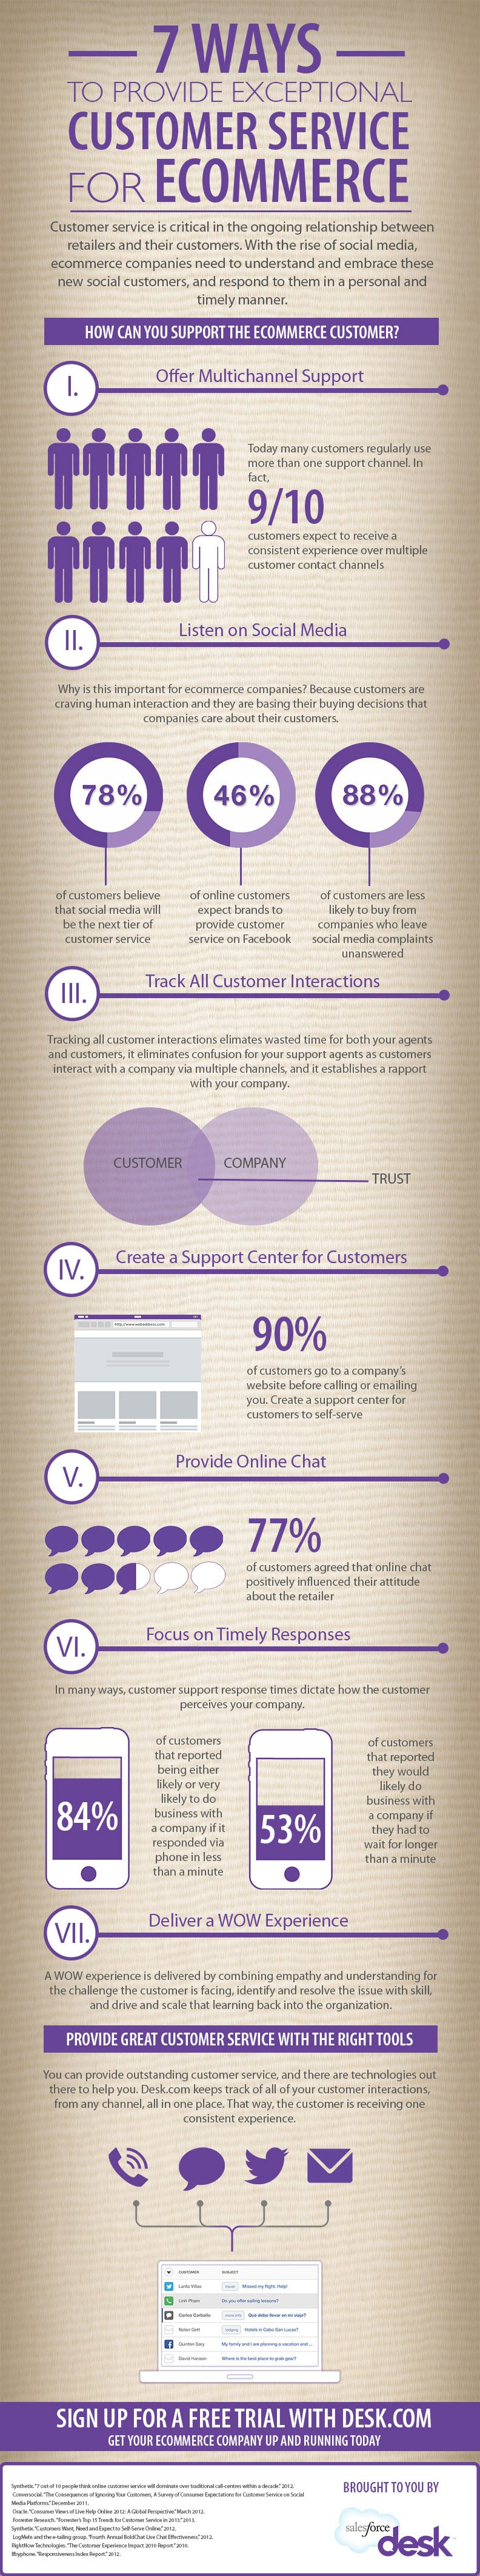 7 Ways To Provide Exceptional Online Customer Service [Infographic]